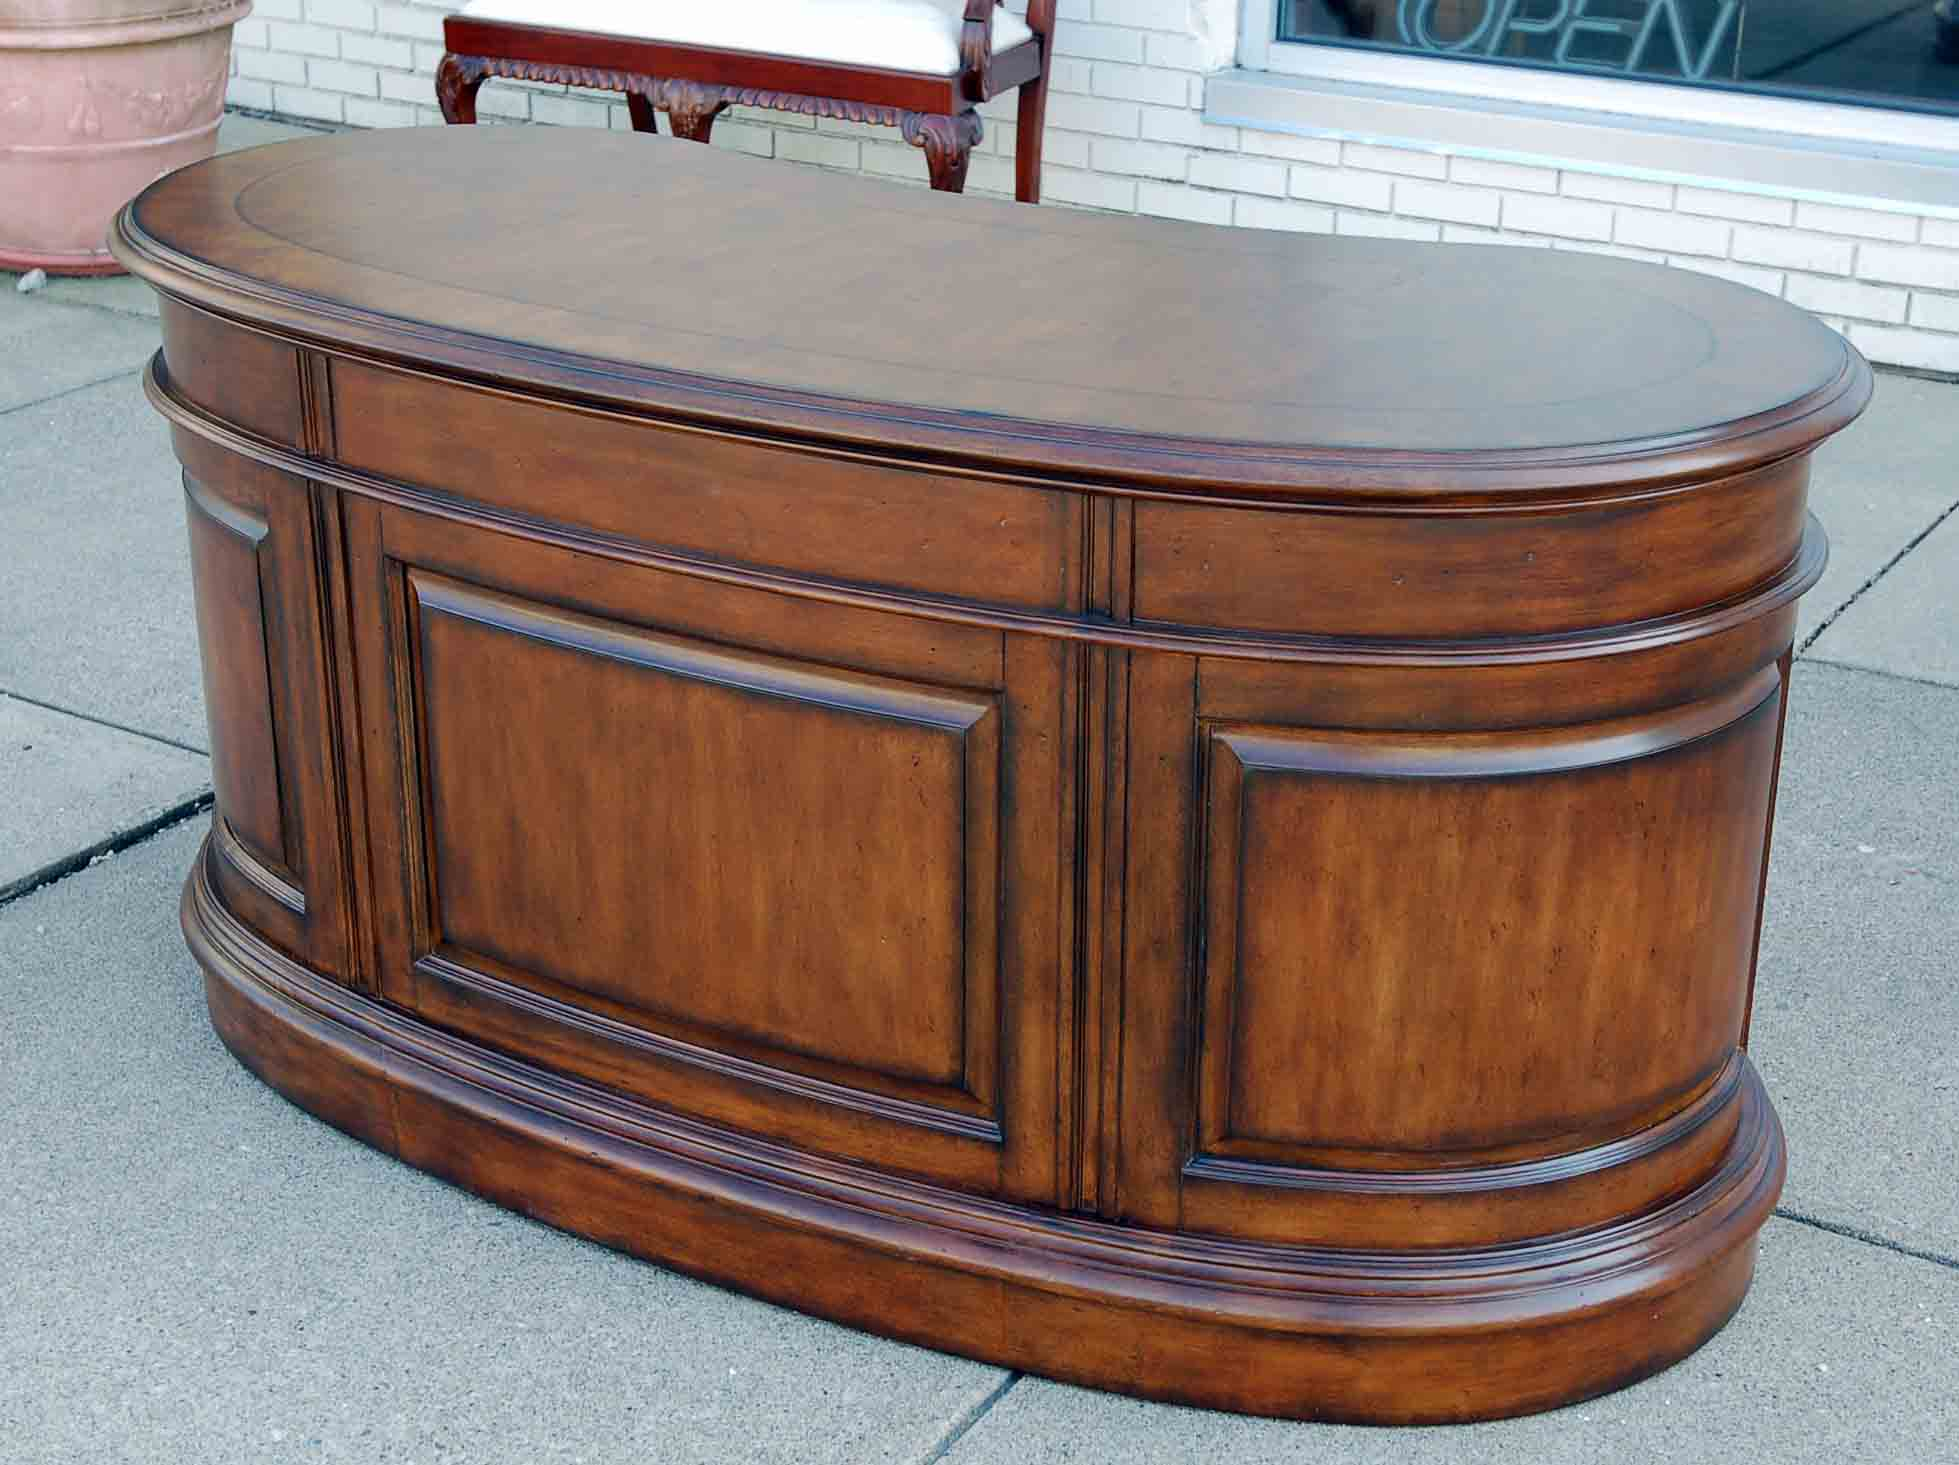 Heirloom kidney shaped office desk ebay - Kidney shaped office desk ...